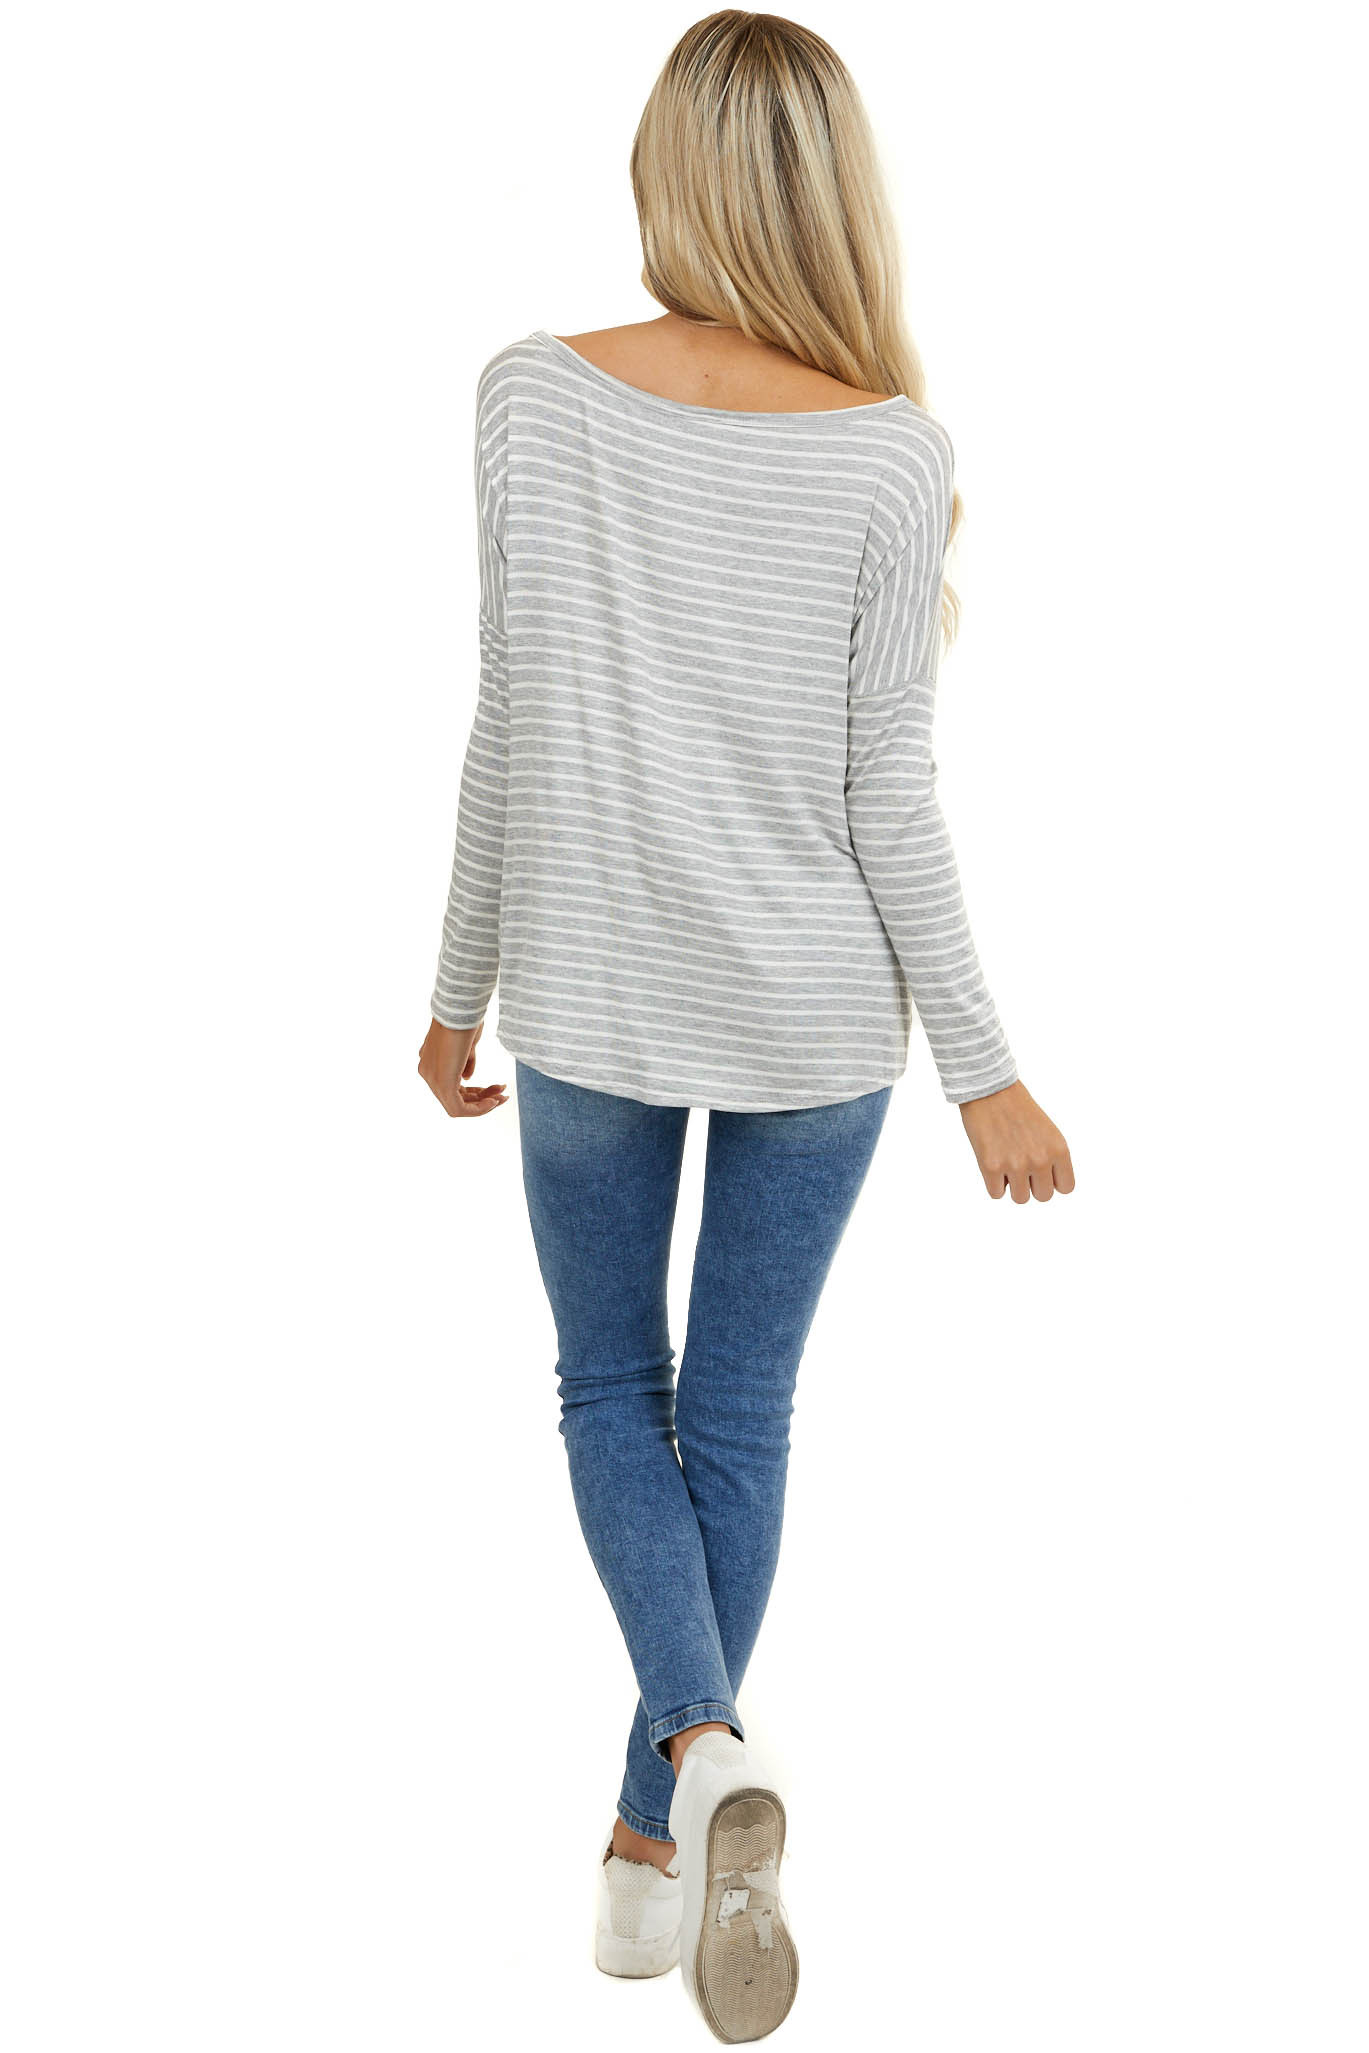 Dove Grey Striped Wide Neck Top with Front Twist